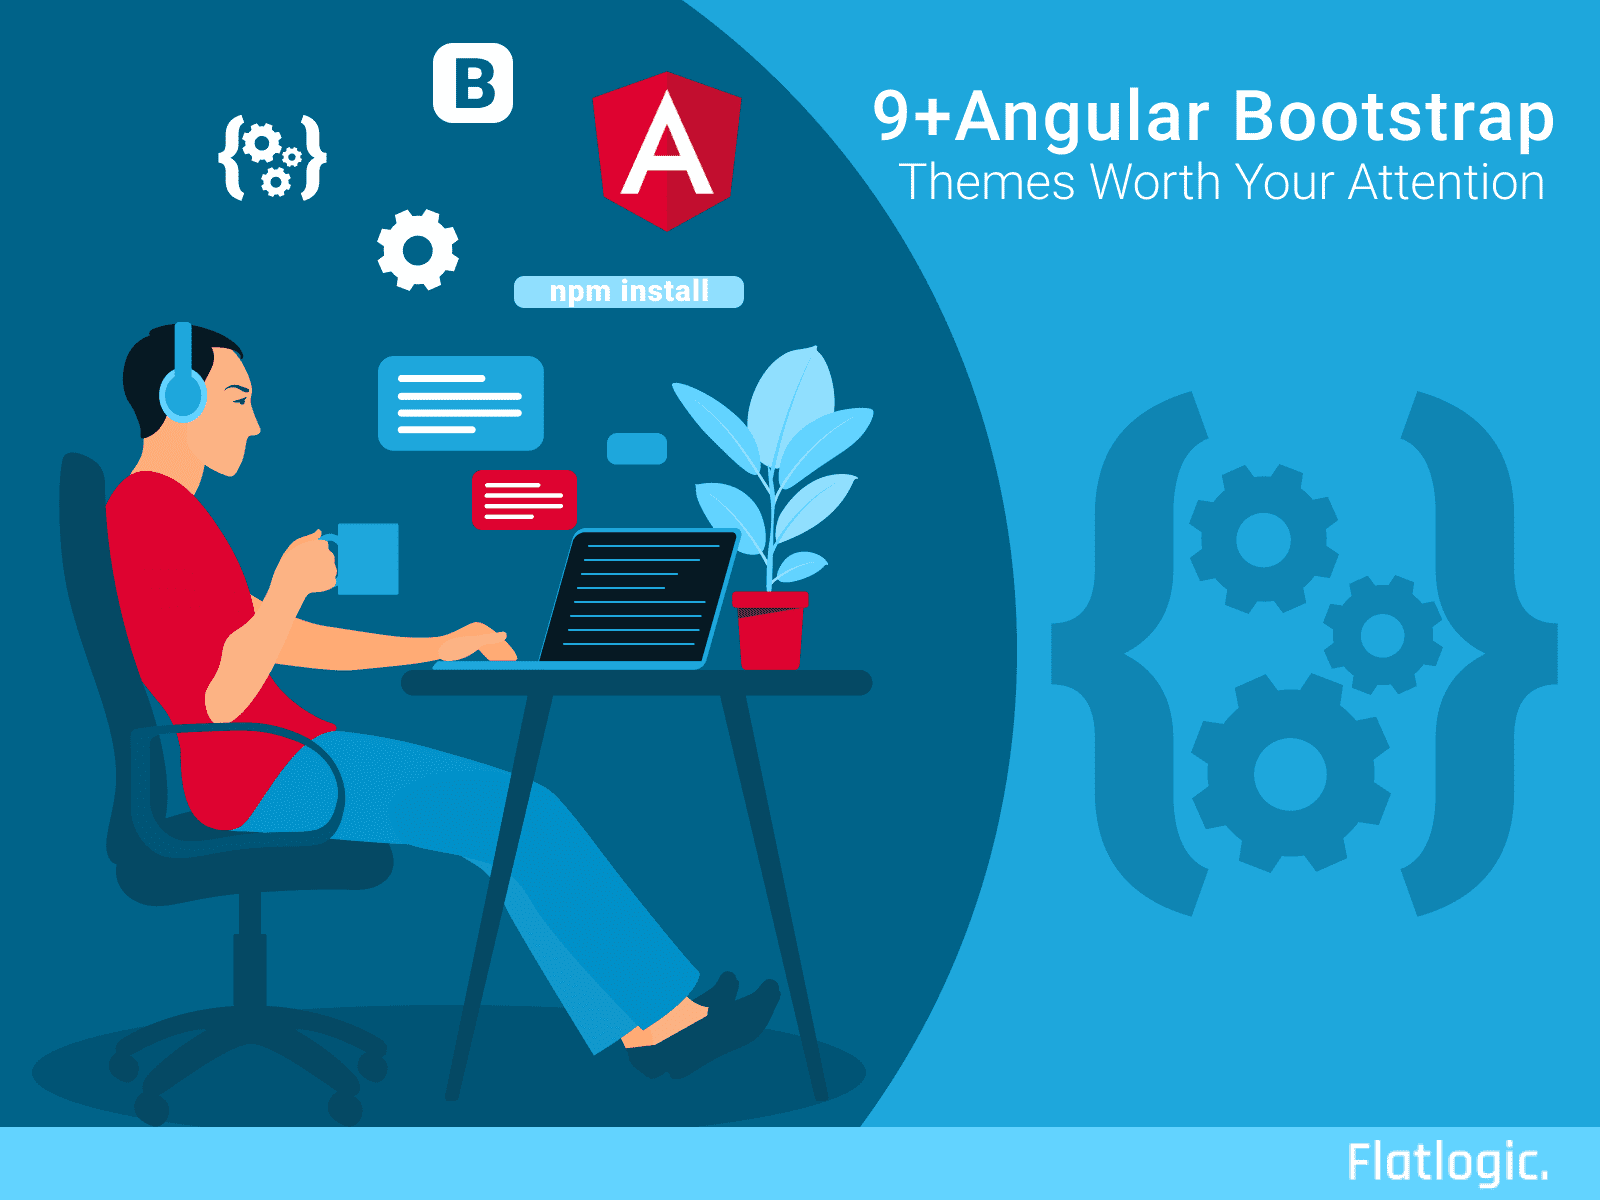 9+ Angular Bootstrap Themes Worth Your Attention